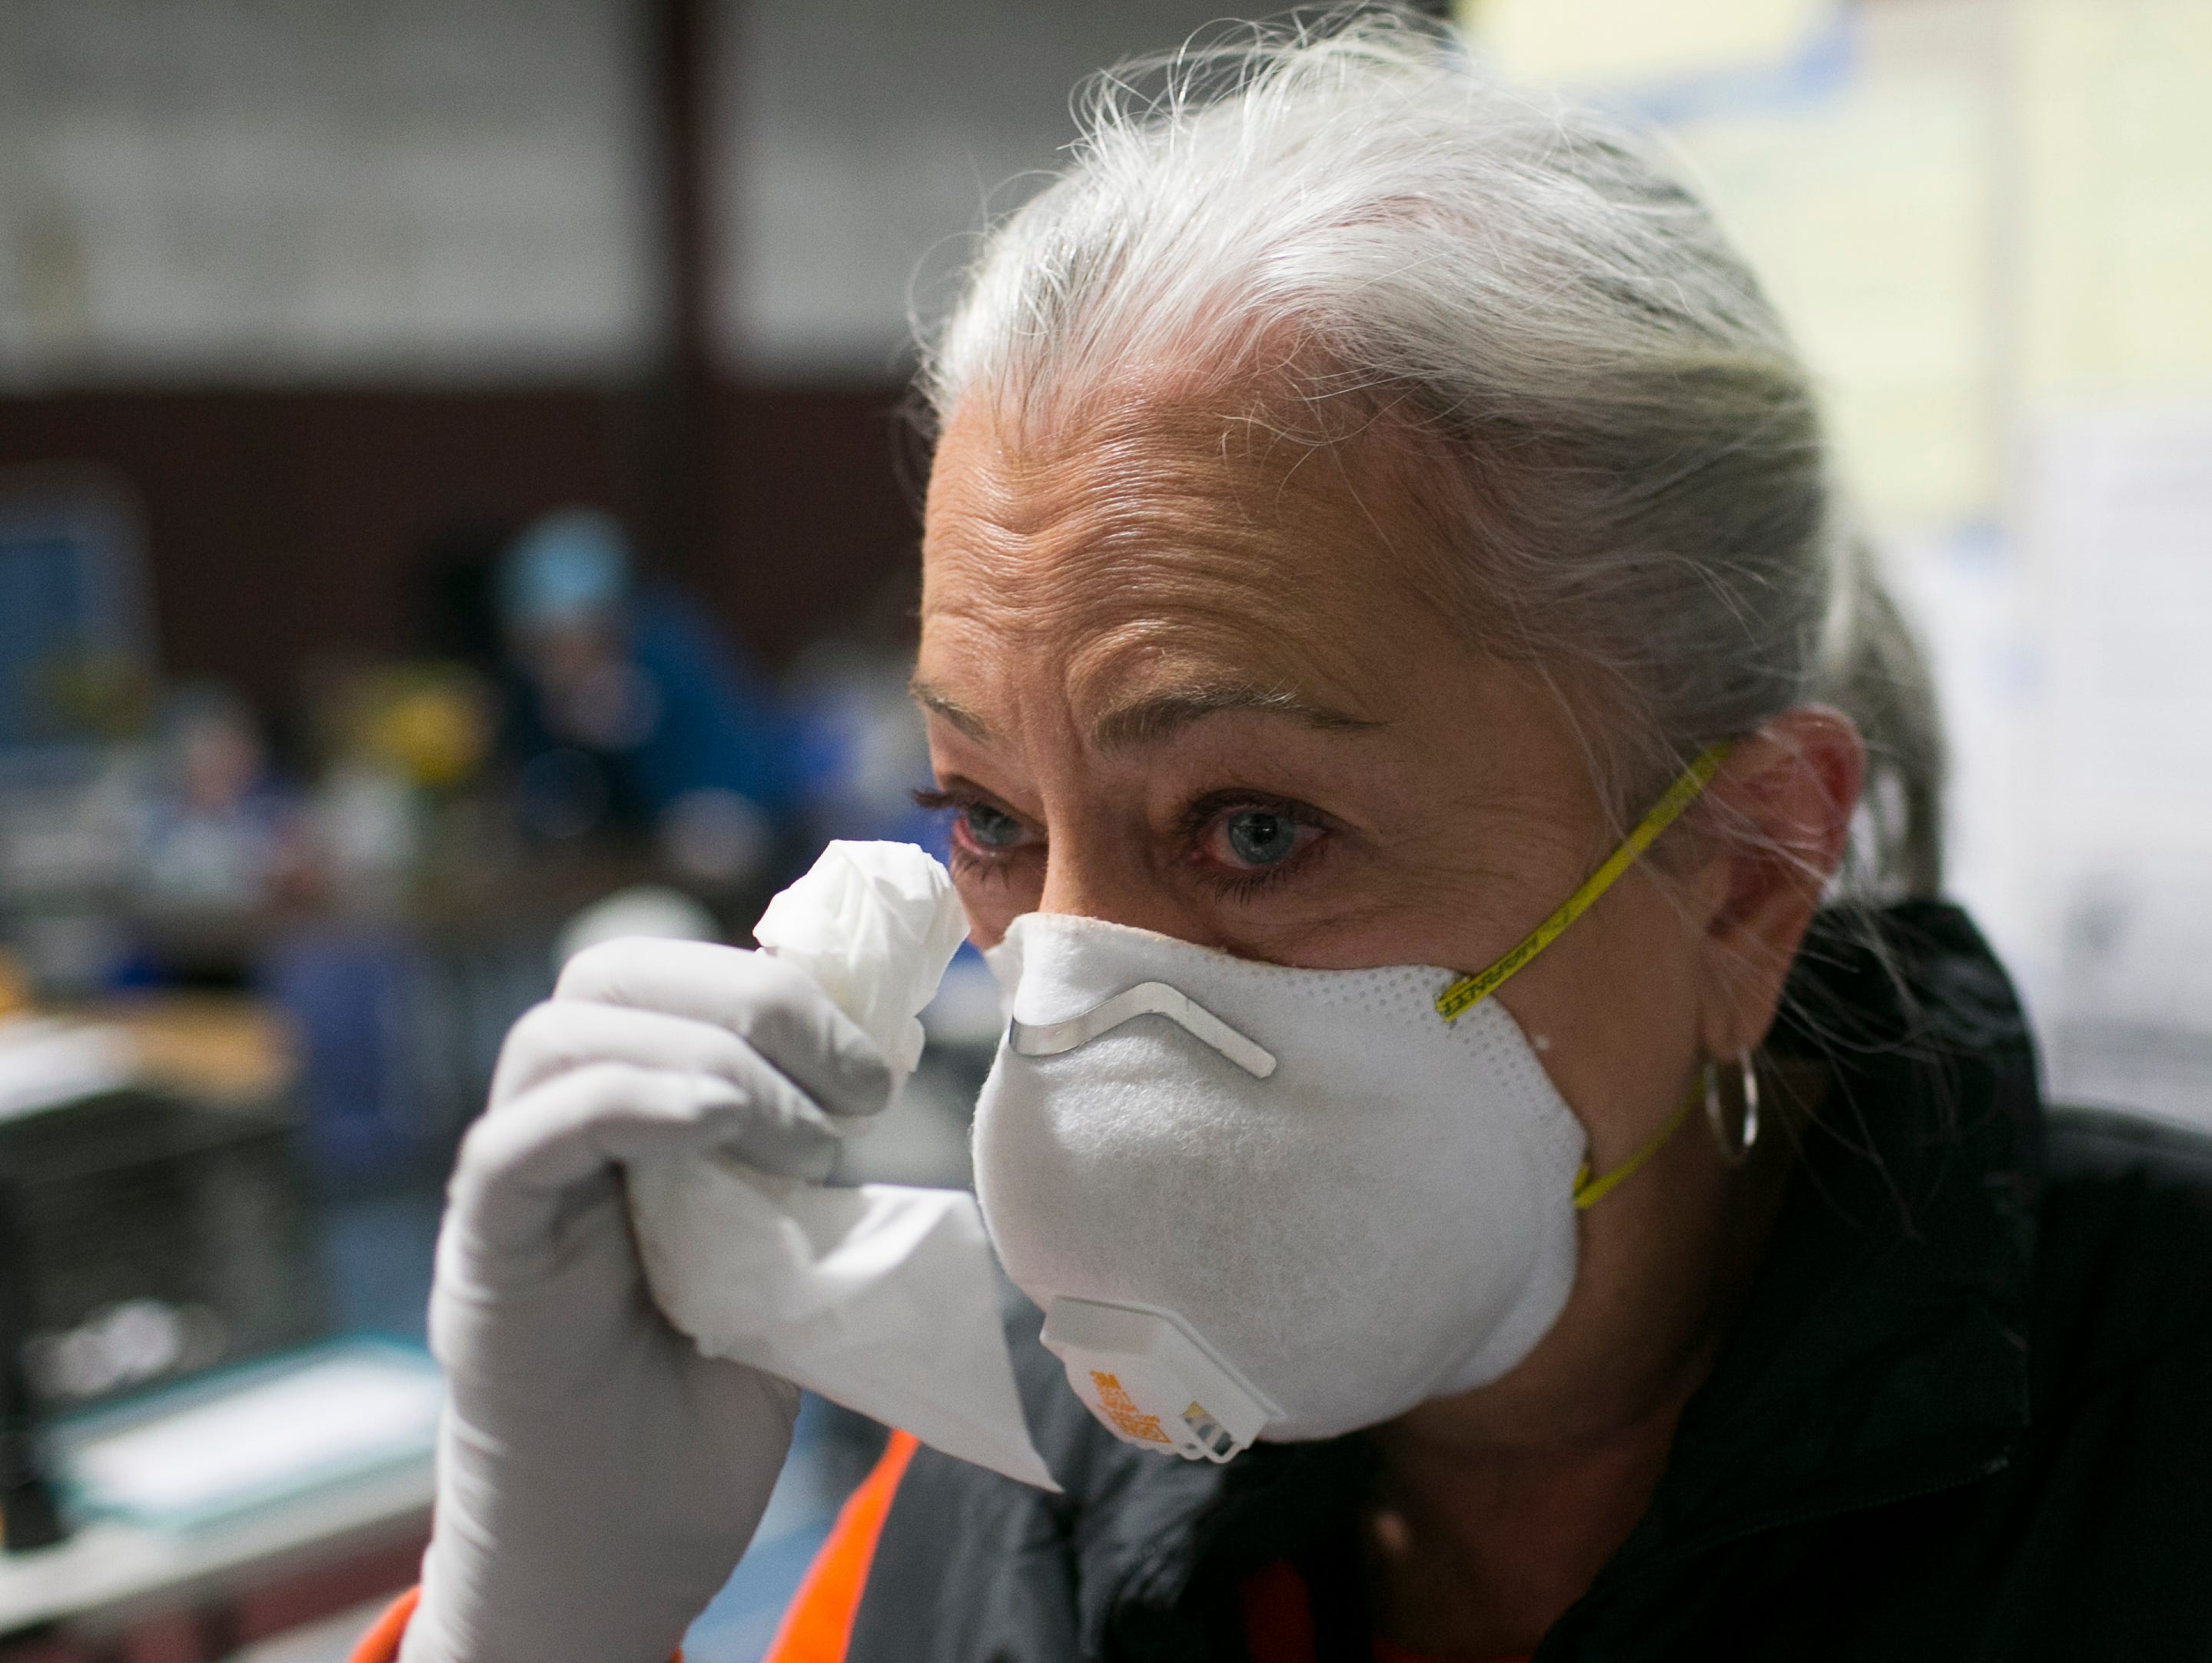 Kathleen Hassig wipes a tear from her eye after talking about her experience volunteering with Camp Fire evacuees at the East Avenue Church Shelter in Chico, California on November 16, 2018.